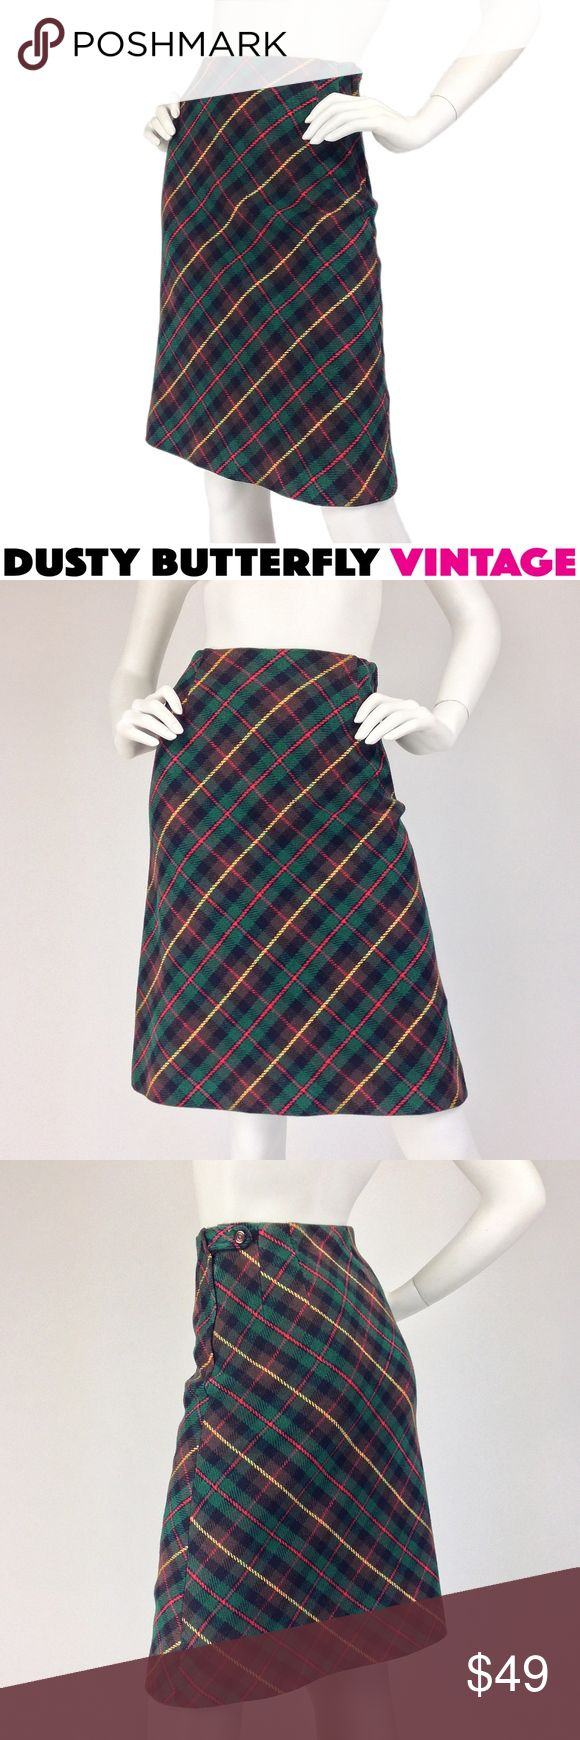 VINTAGE 60s 70s PLAID WOOL SKIRT Tartan Vtg 60s-70s plaid wool skirt in classic hunter green tartan, updated mod-style w a dynamic diagonal cut. Timeless yet cool piece!  •Tartan plaid in hunter green/blk/yellow/red/brown •Slim fit w slight A-line •High waist •Side button/zip •Feels/looks like wool, could be acrylic •Smooth backing on inside of fabric •Made in USA •Very good vtg condition  Vtg size 8. Best ffit: XS •Waist:24 •Hips: Free •Length:23  💗Suggested User 💗Top Rated Seller 💗Fast…